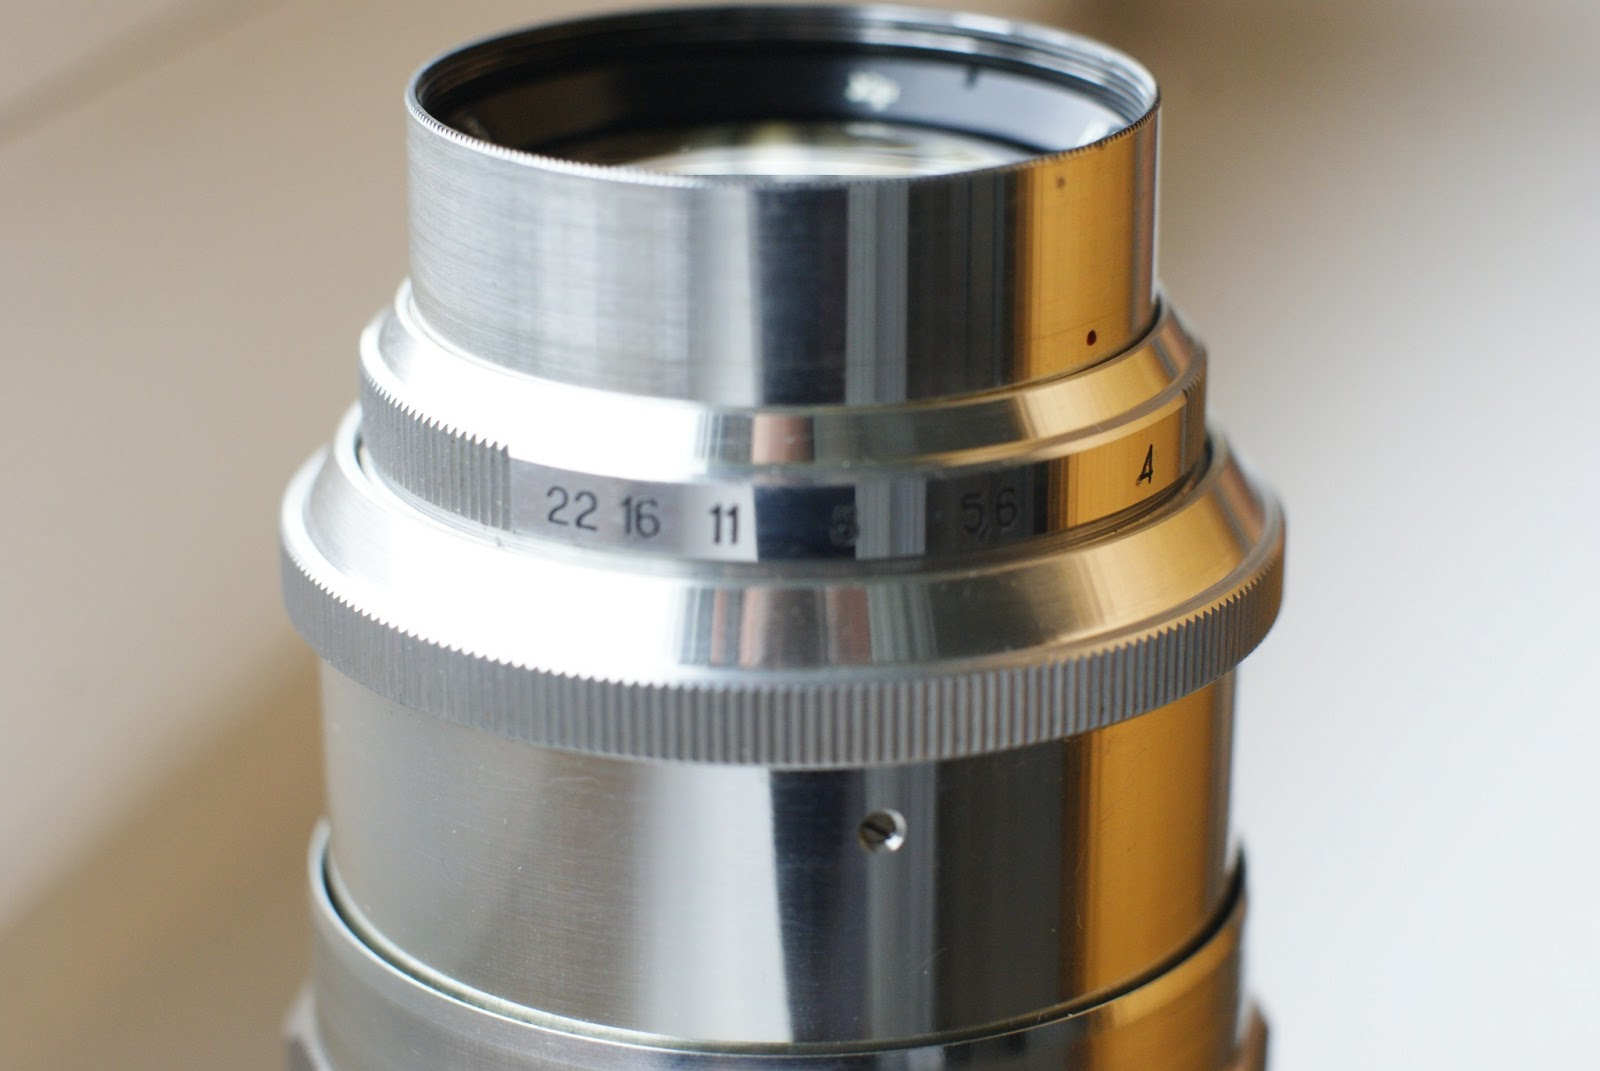 Jupiter-11 4 / 135 M39 to M42 Adapter Ring